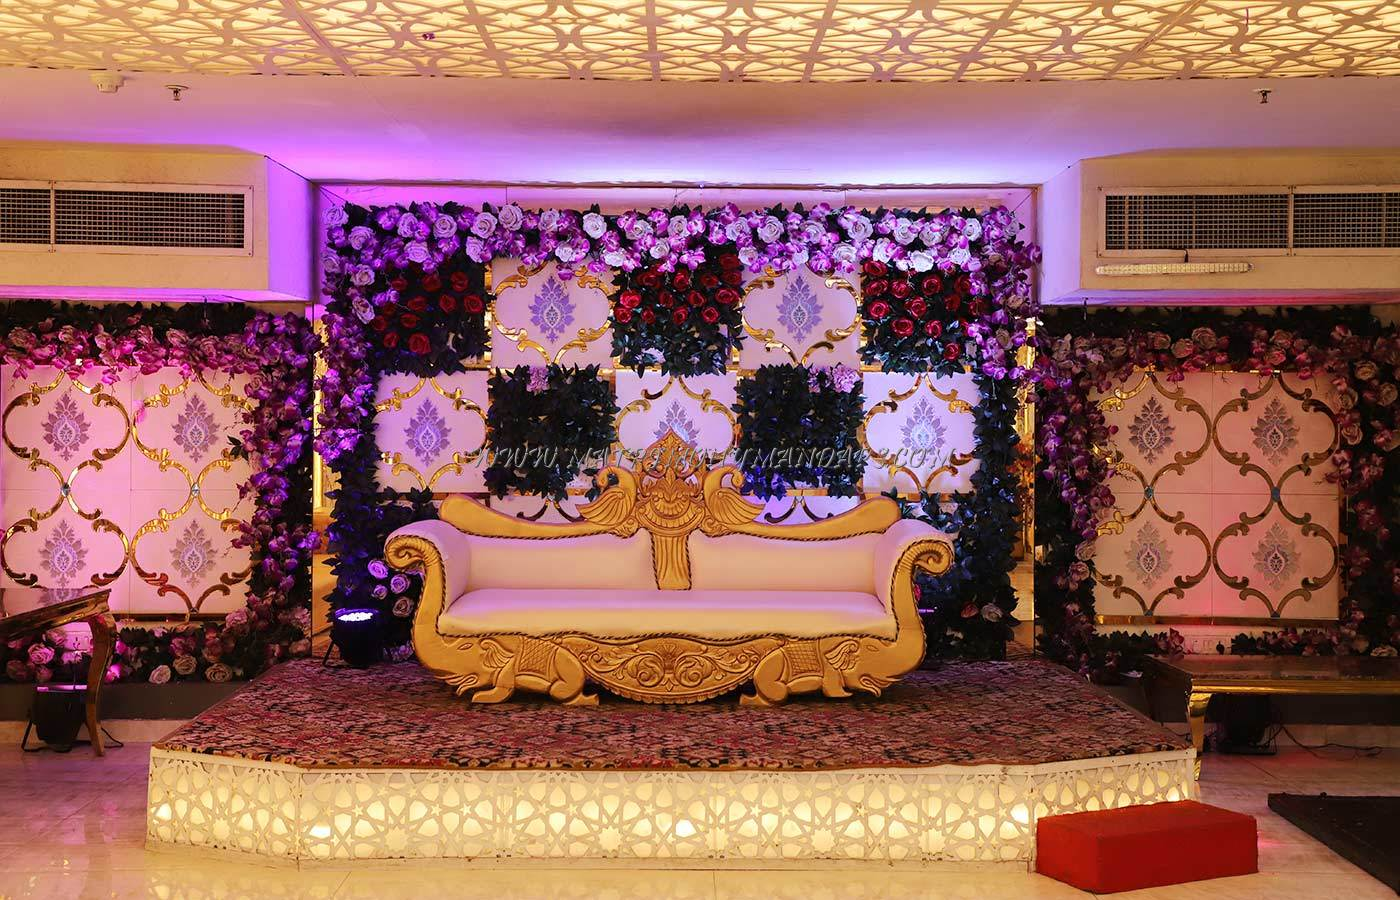 Find More Banquet Halls in Kalkaji